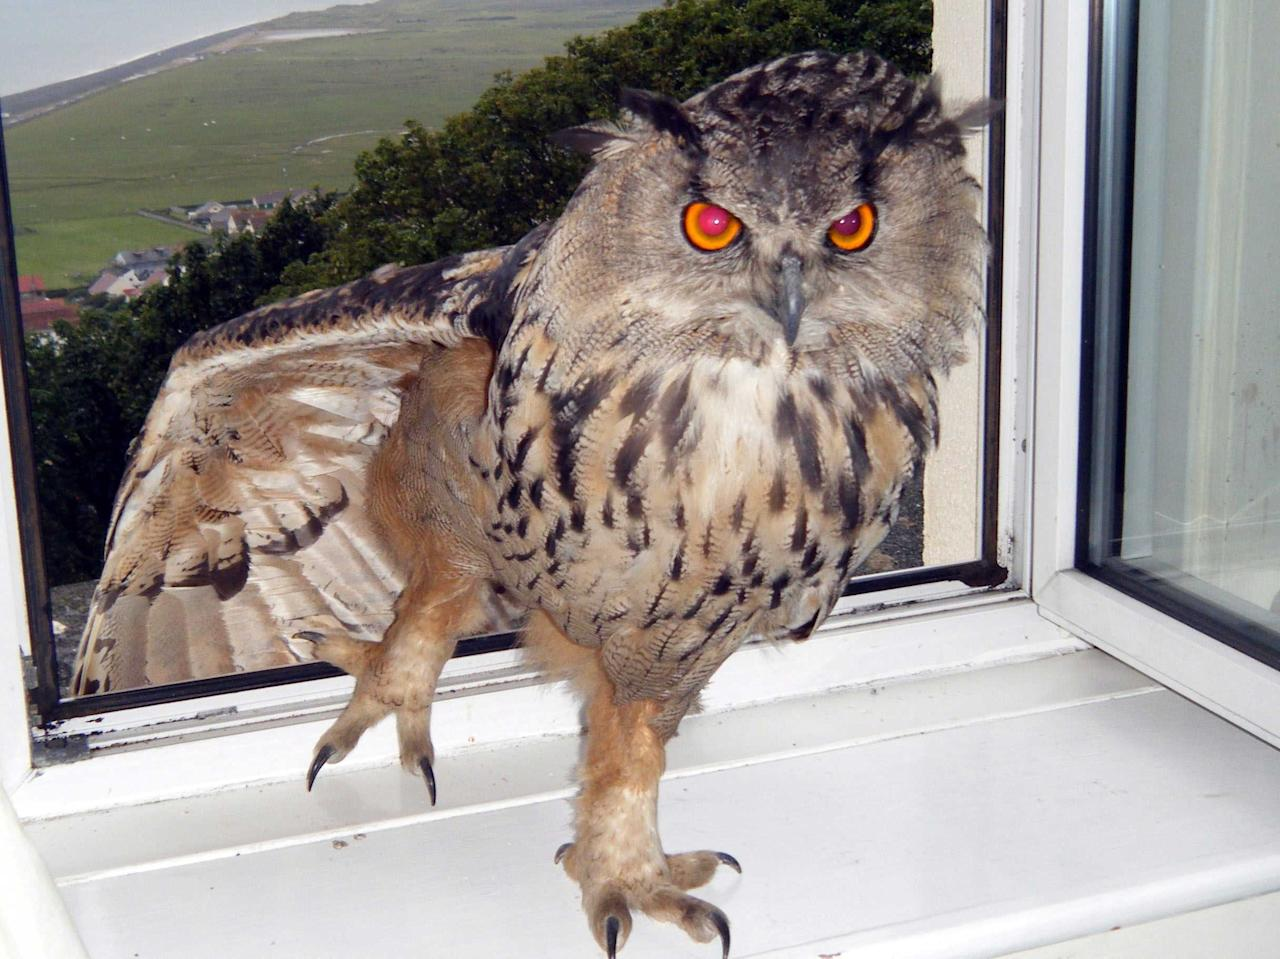 """Eyeballs"", the wild owl, was captured and taken to a sanctuary in Devon after terrorising residents in Northam.  The eagle owl attacked a poodle and gardener and was becoming a danger to children (Caters)"